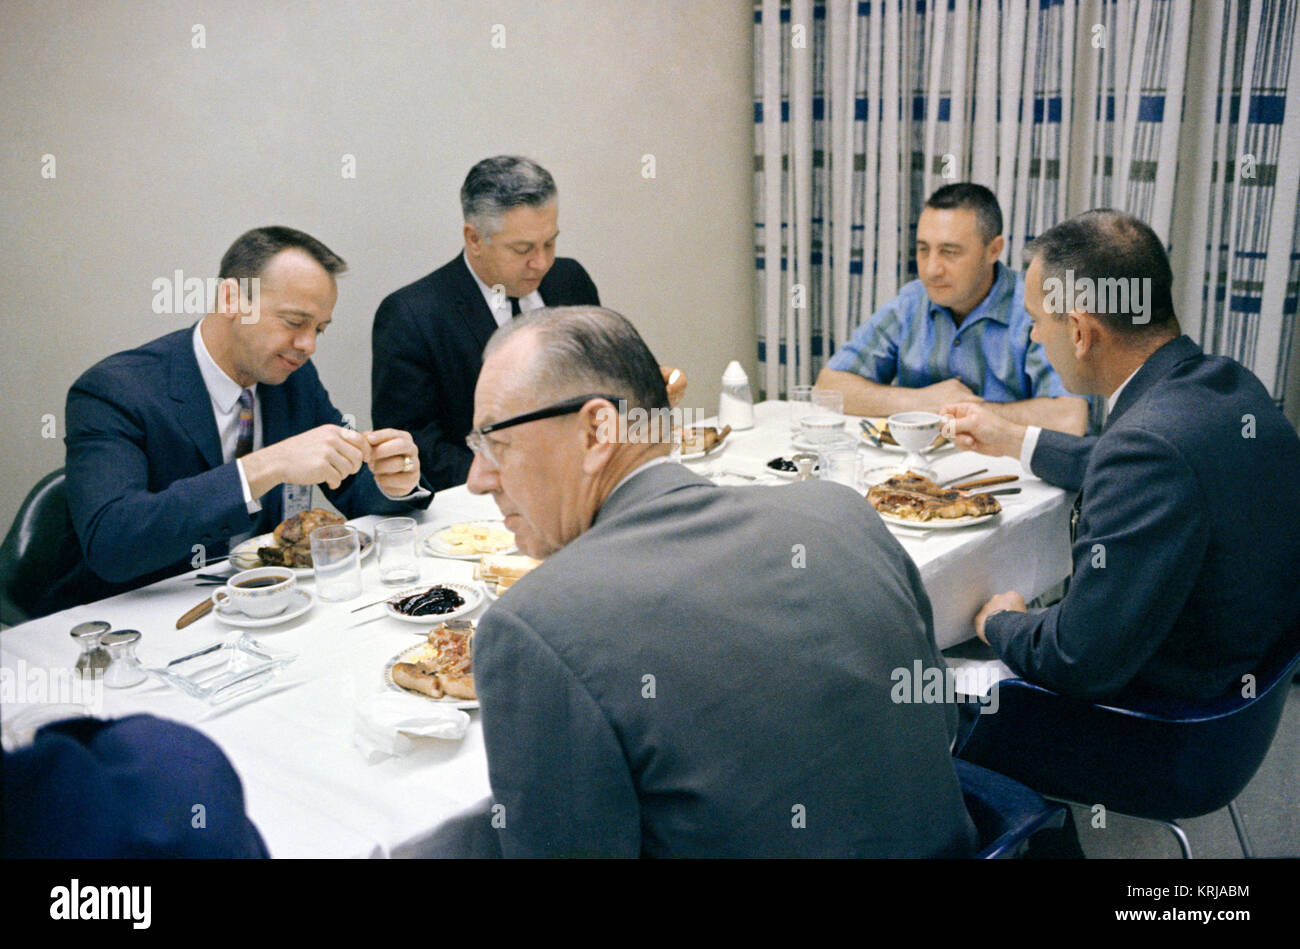 Gemini 3 pre-launch breakfast - Stock Image